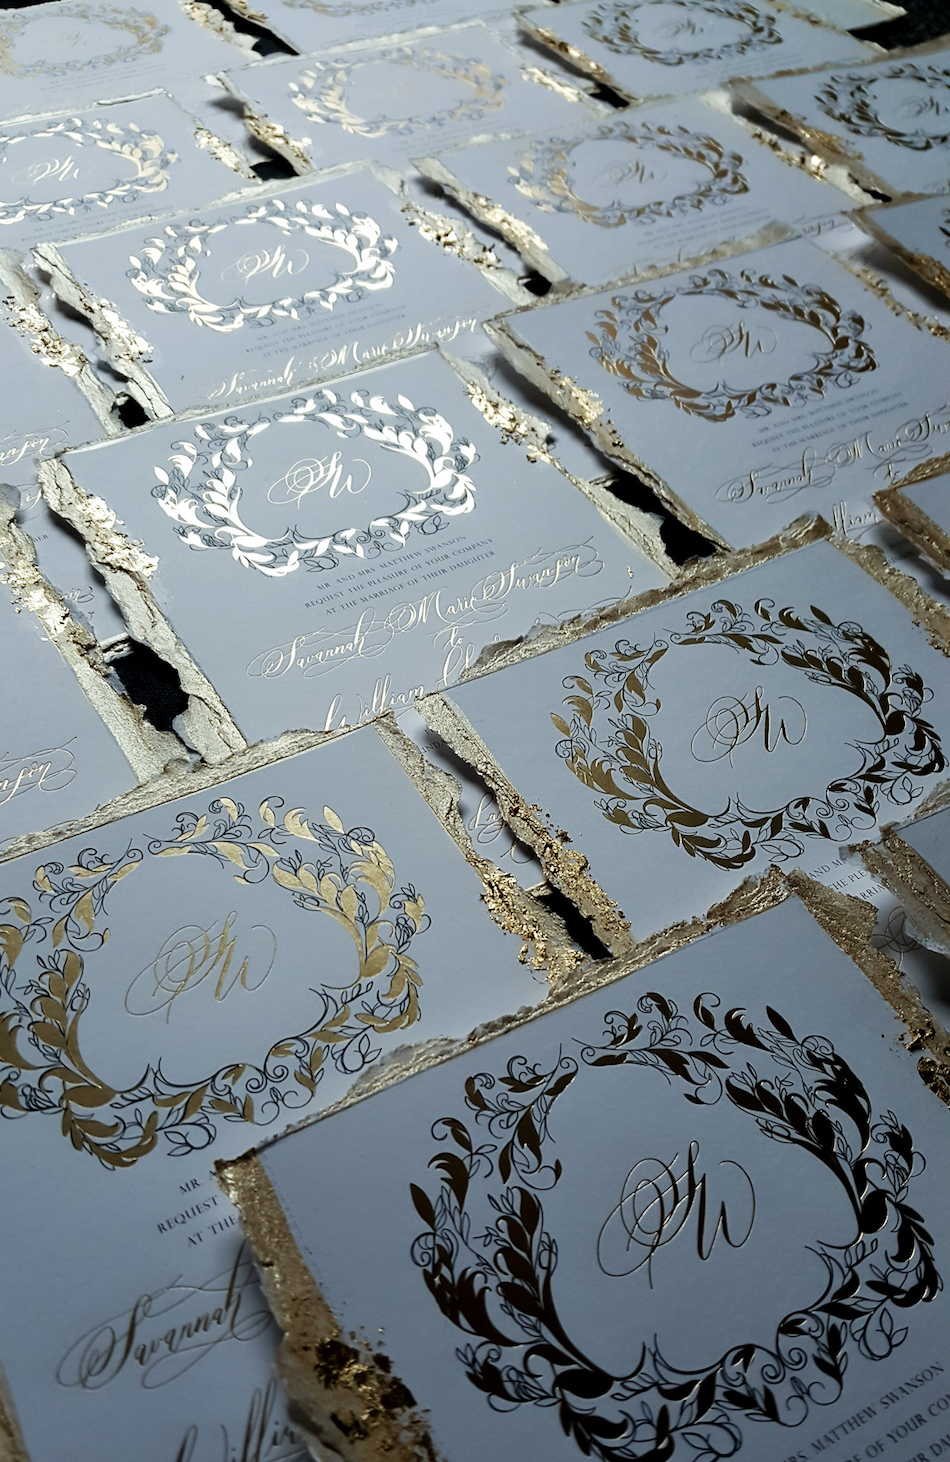 Gold foil wedding invitations with a black and gold crest design